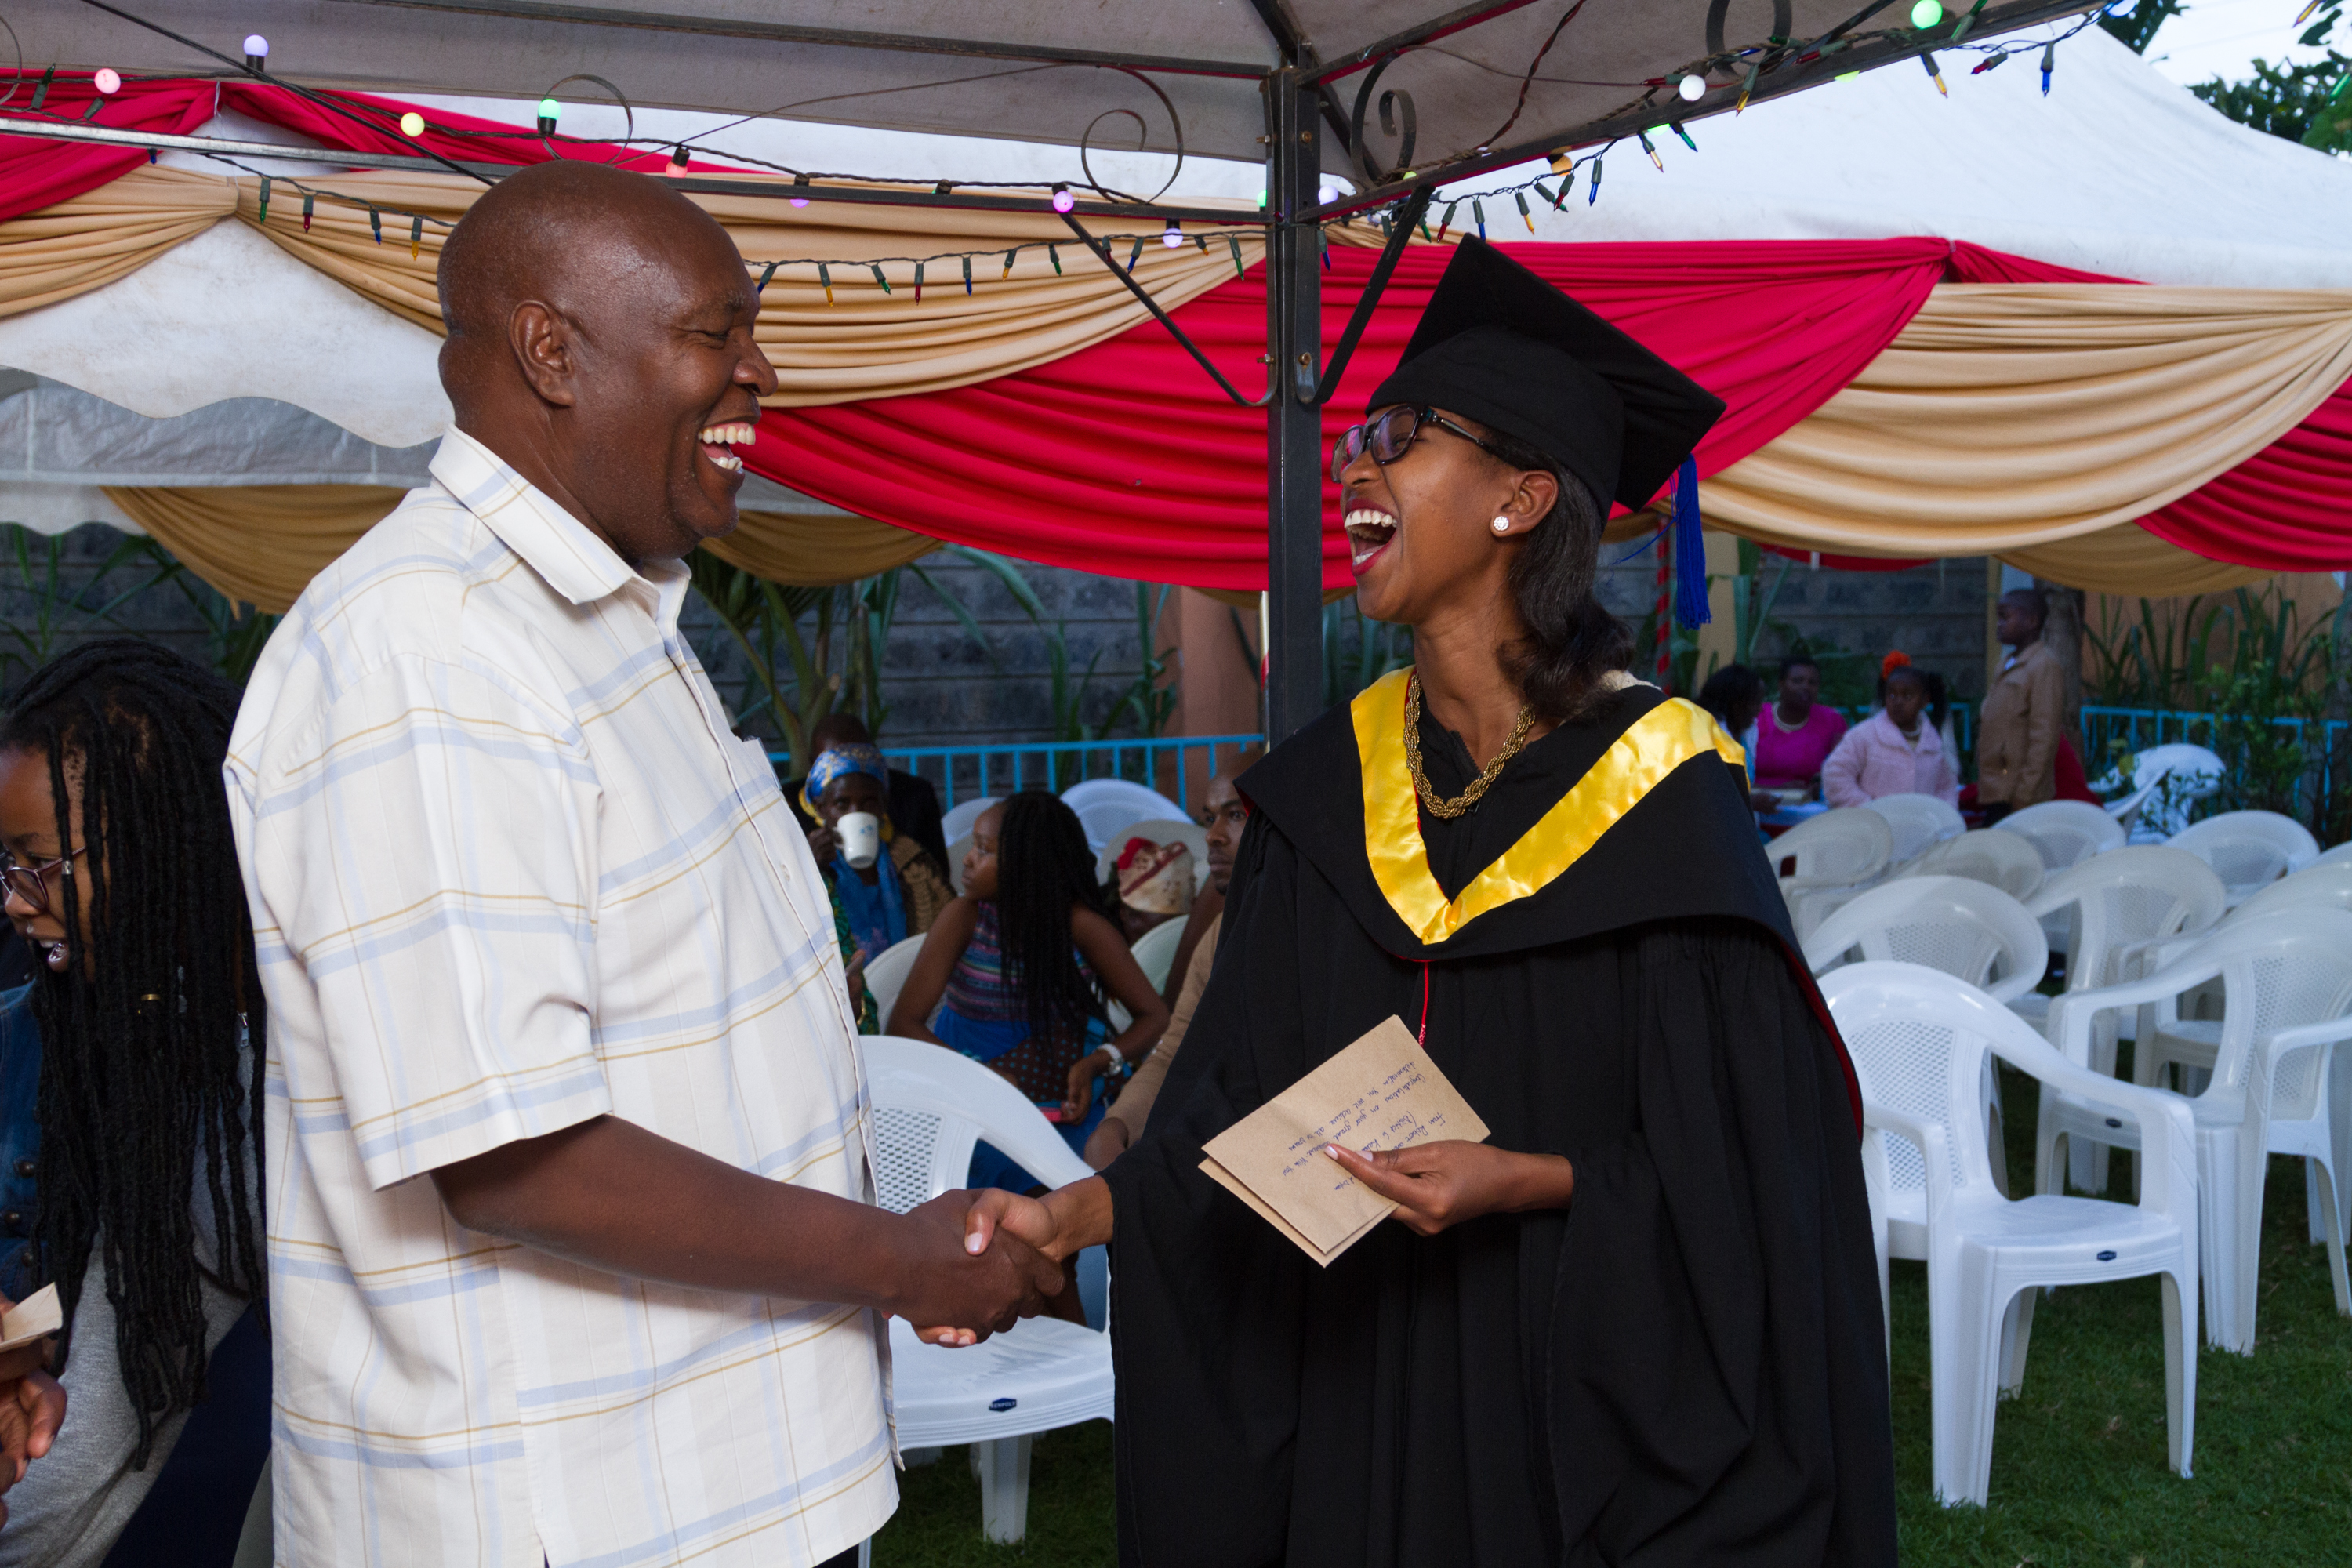 Ms. Betty is congratulated by Senior Lecturer, Eng. Benson Kariuki after her graduation.